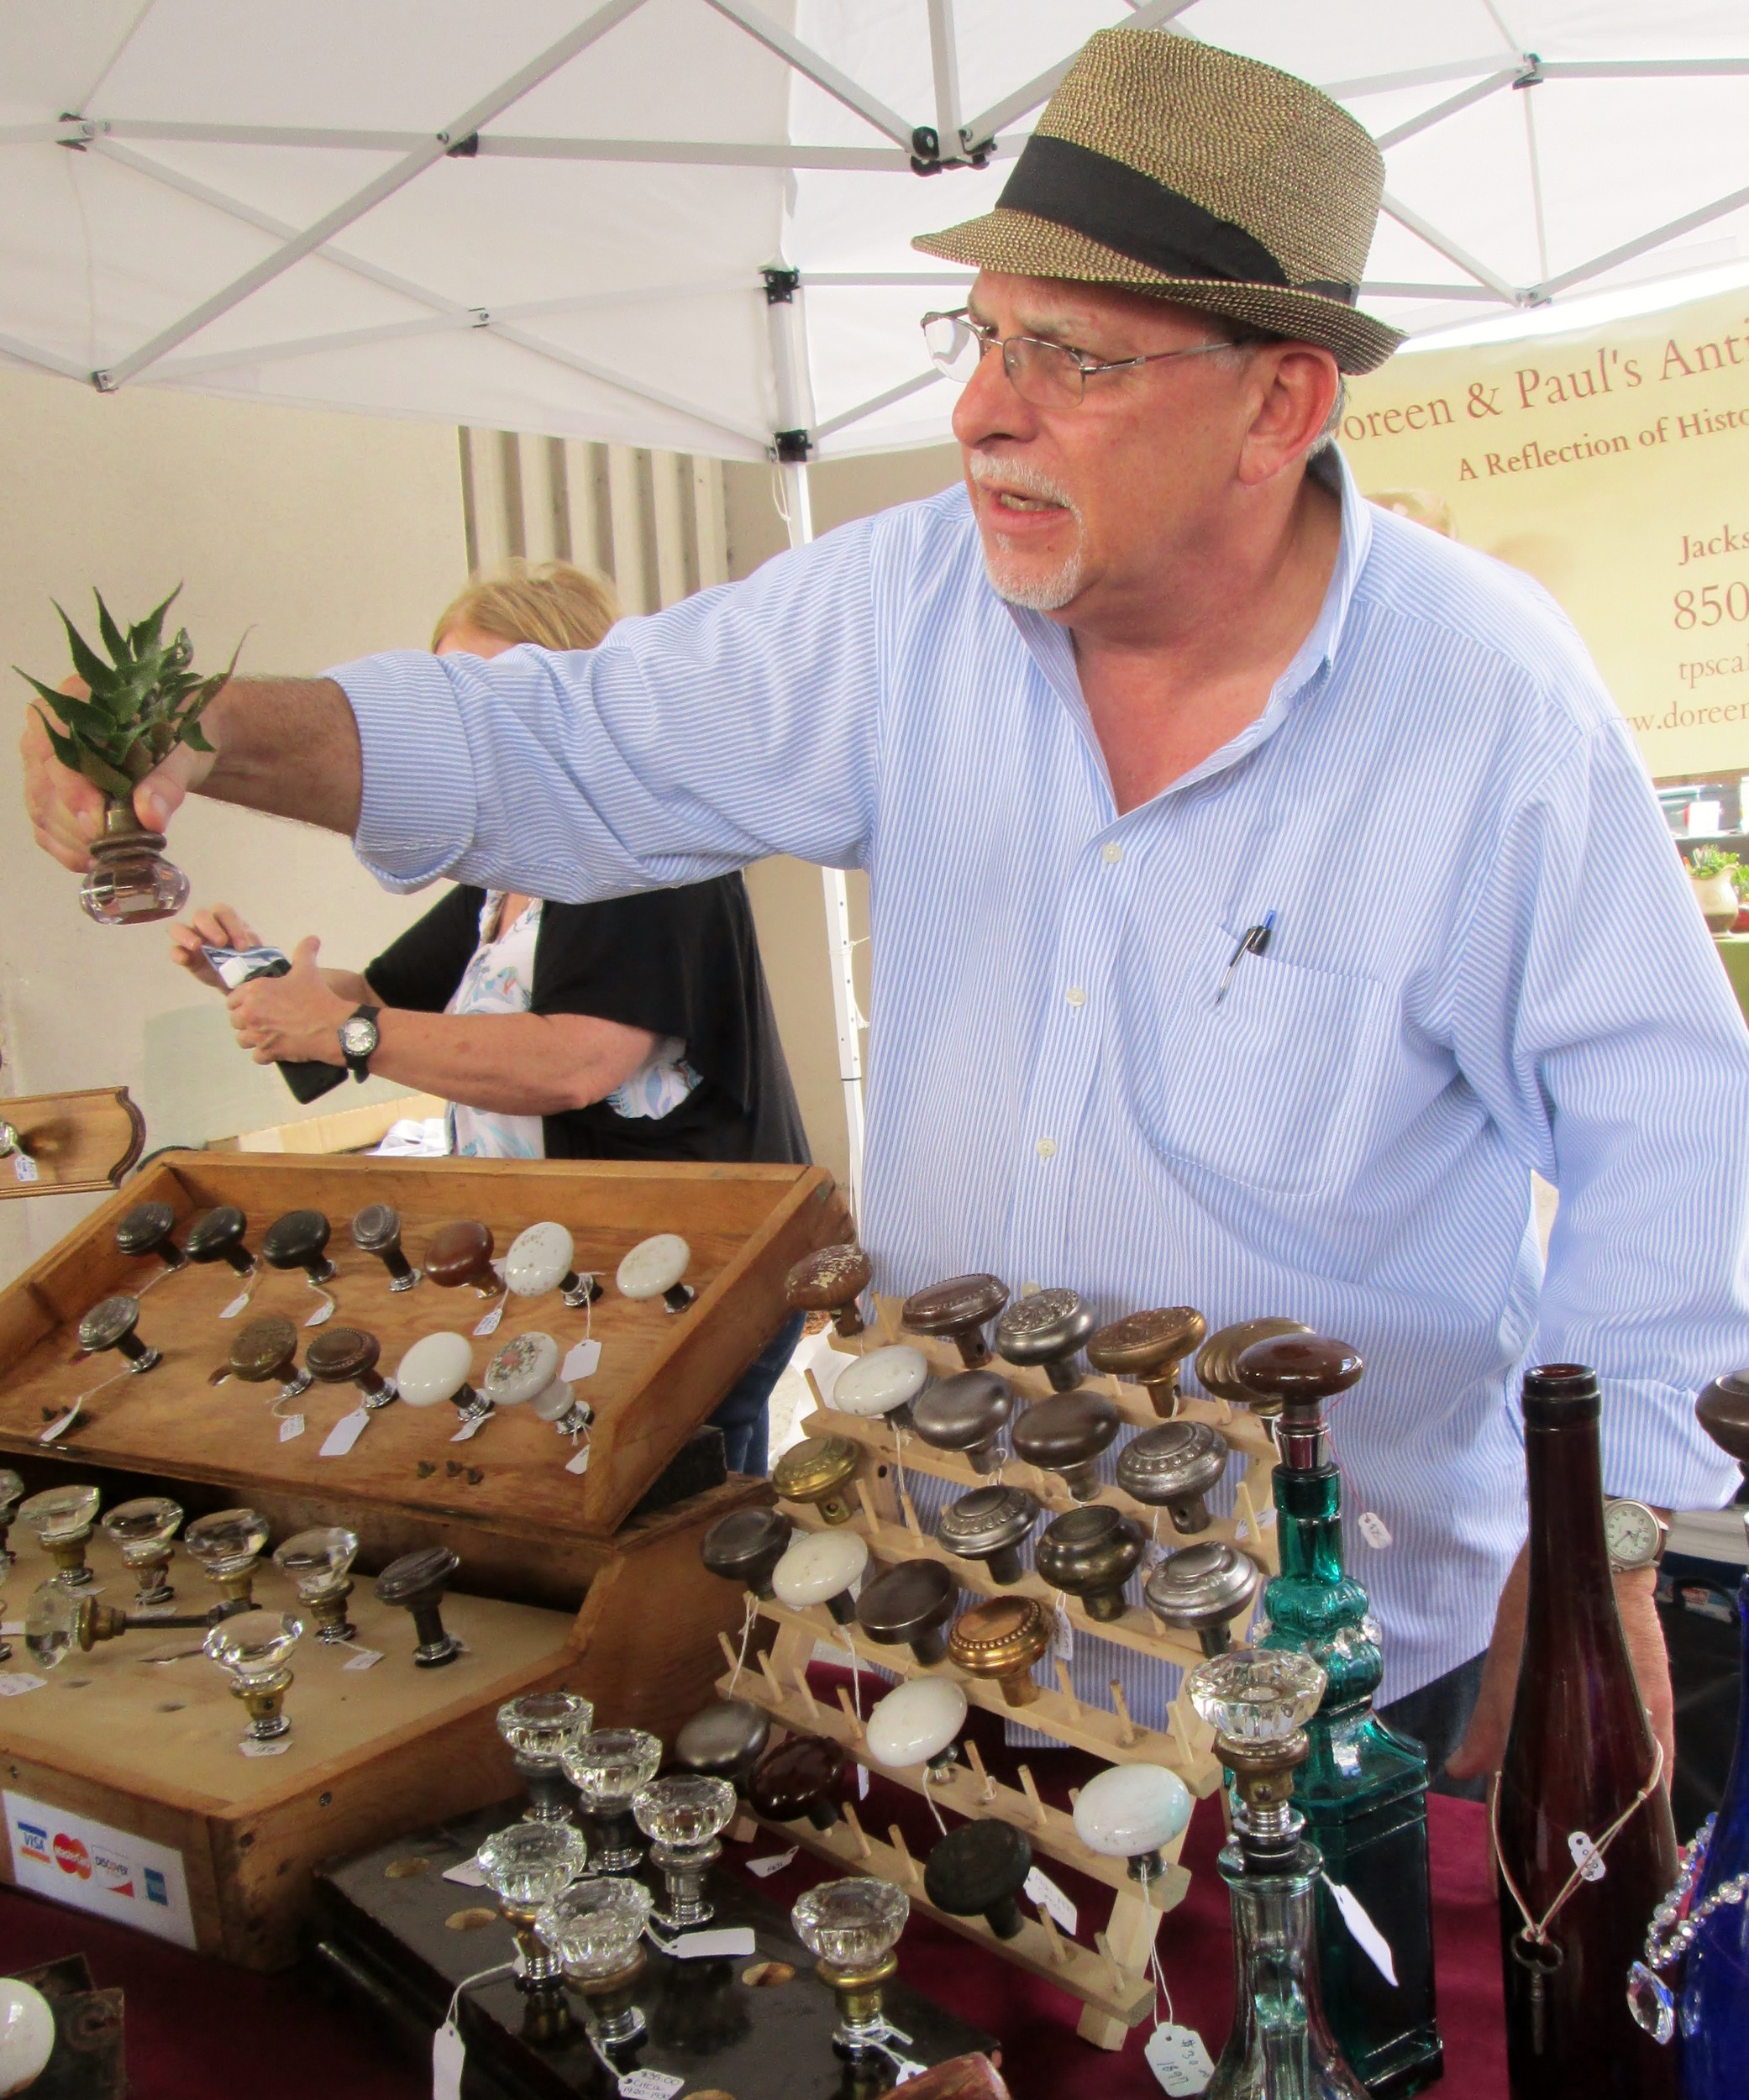 Ted Scallan sells antique door handle wine bottle openers and corks.